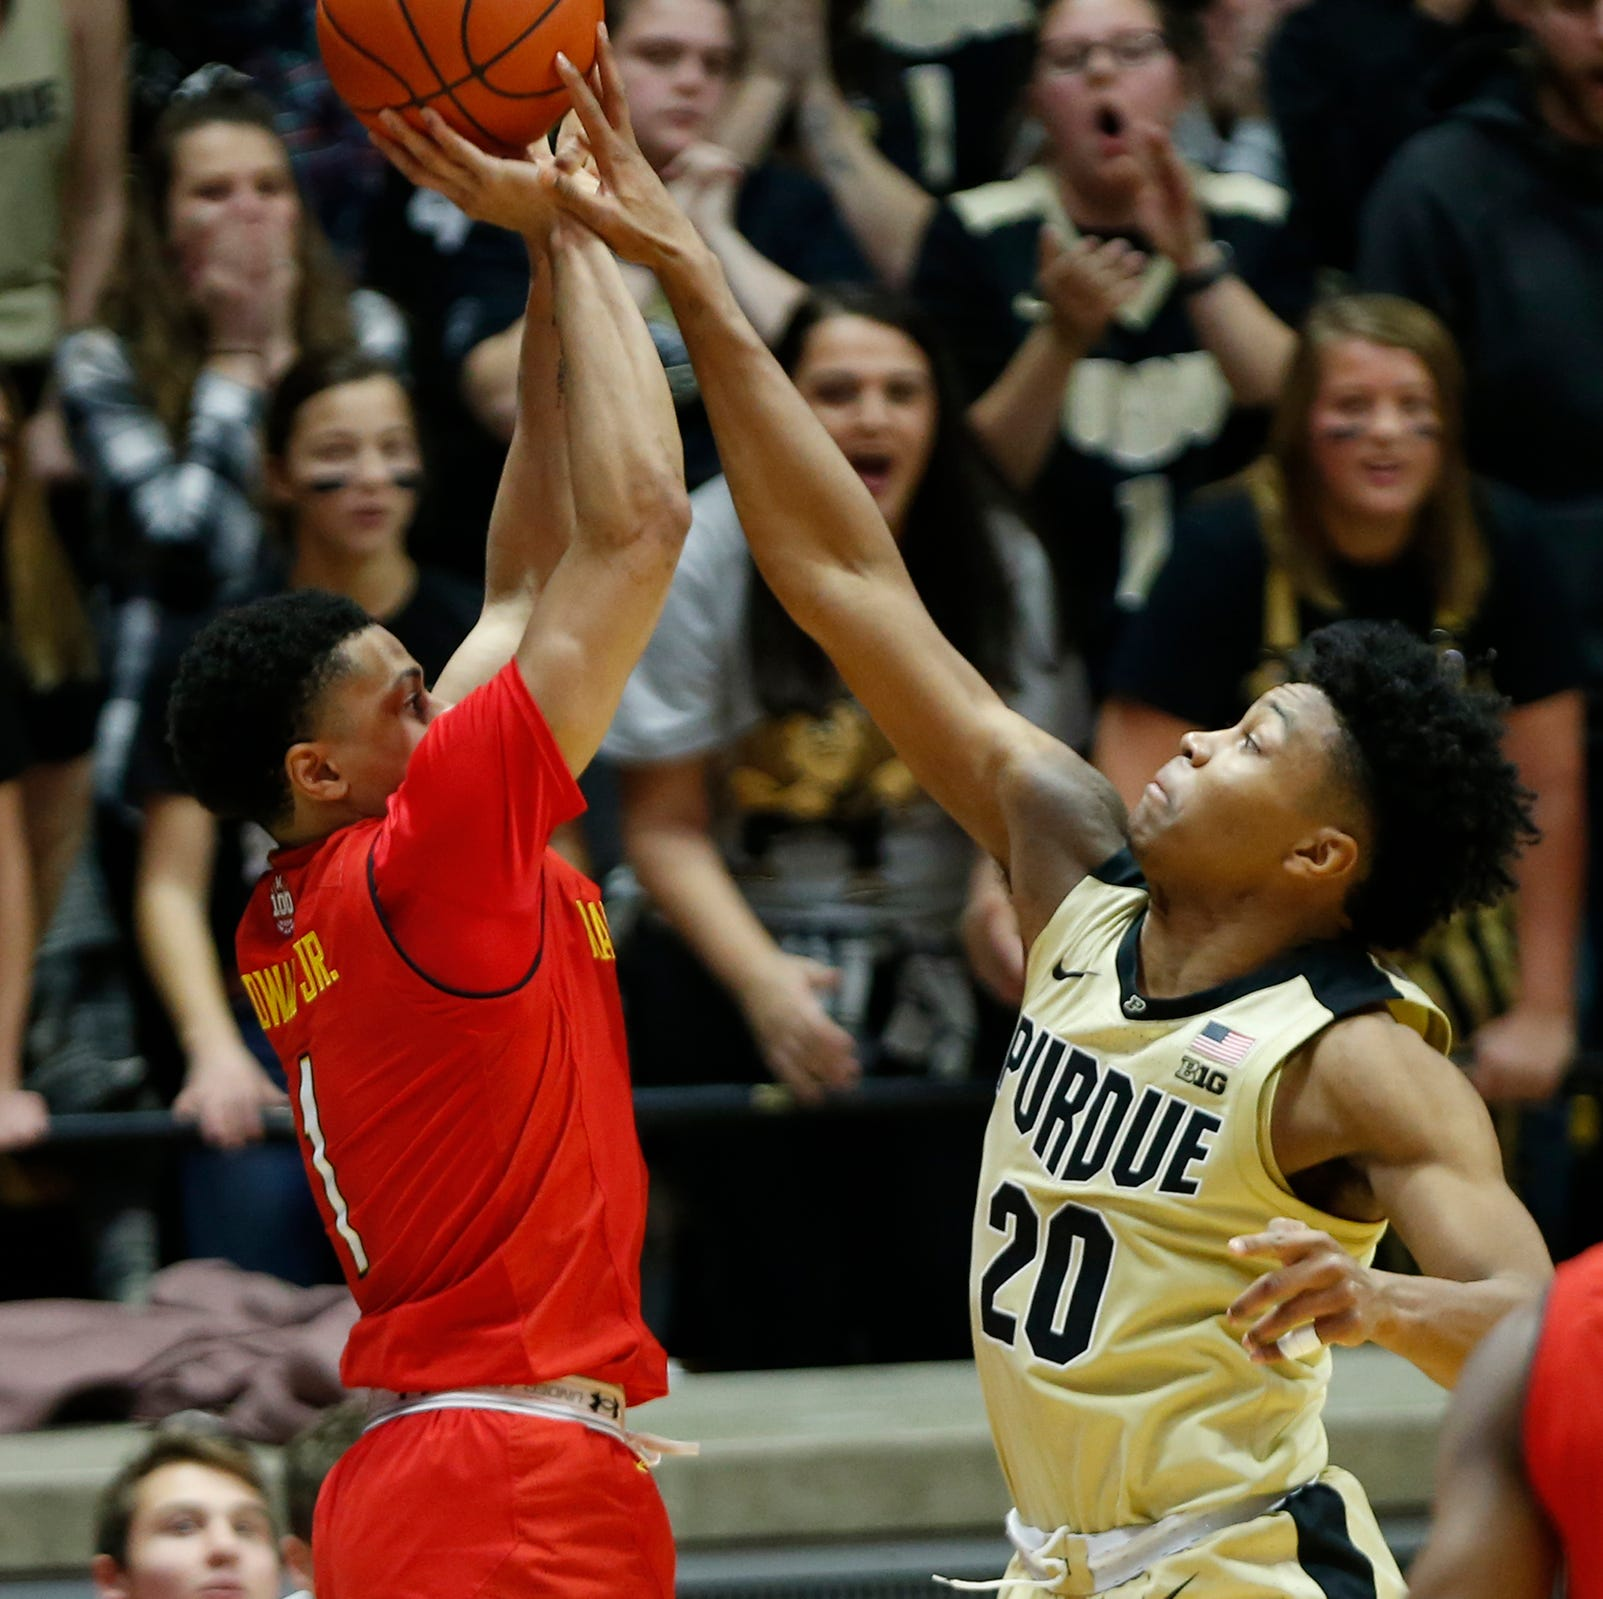 Purdue basketball steps up defensively to hold off No. 23 Maryland